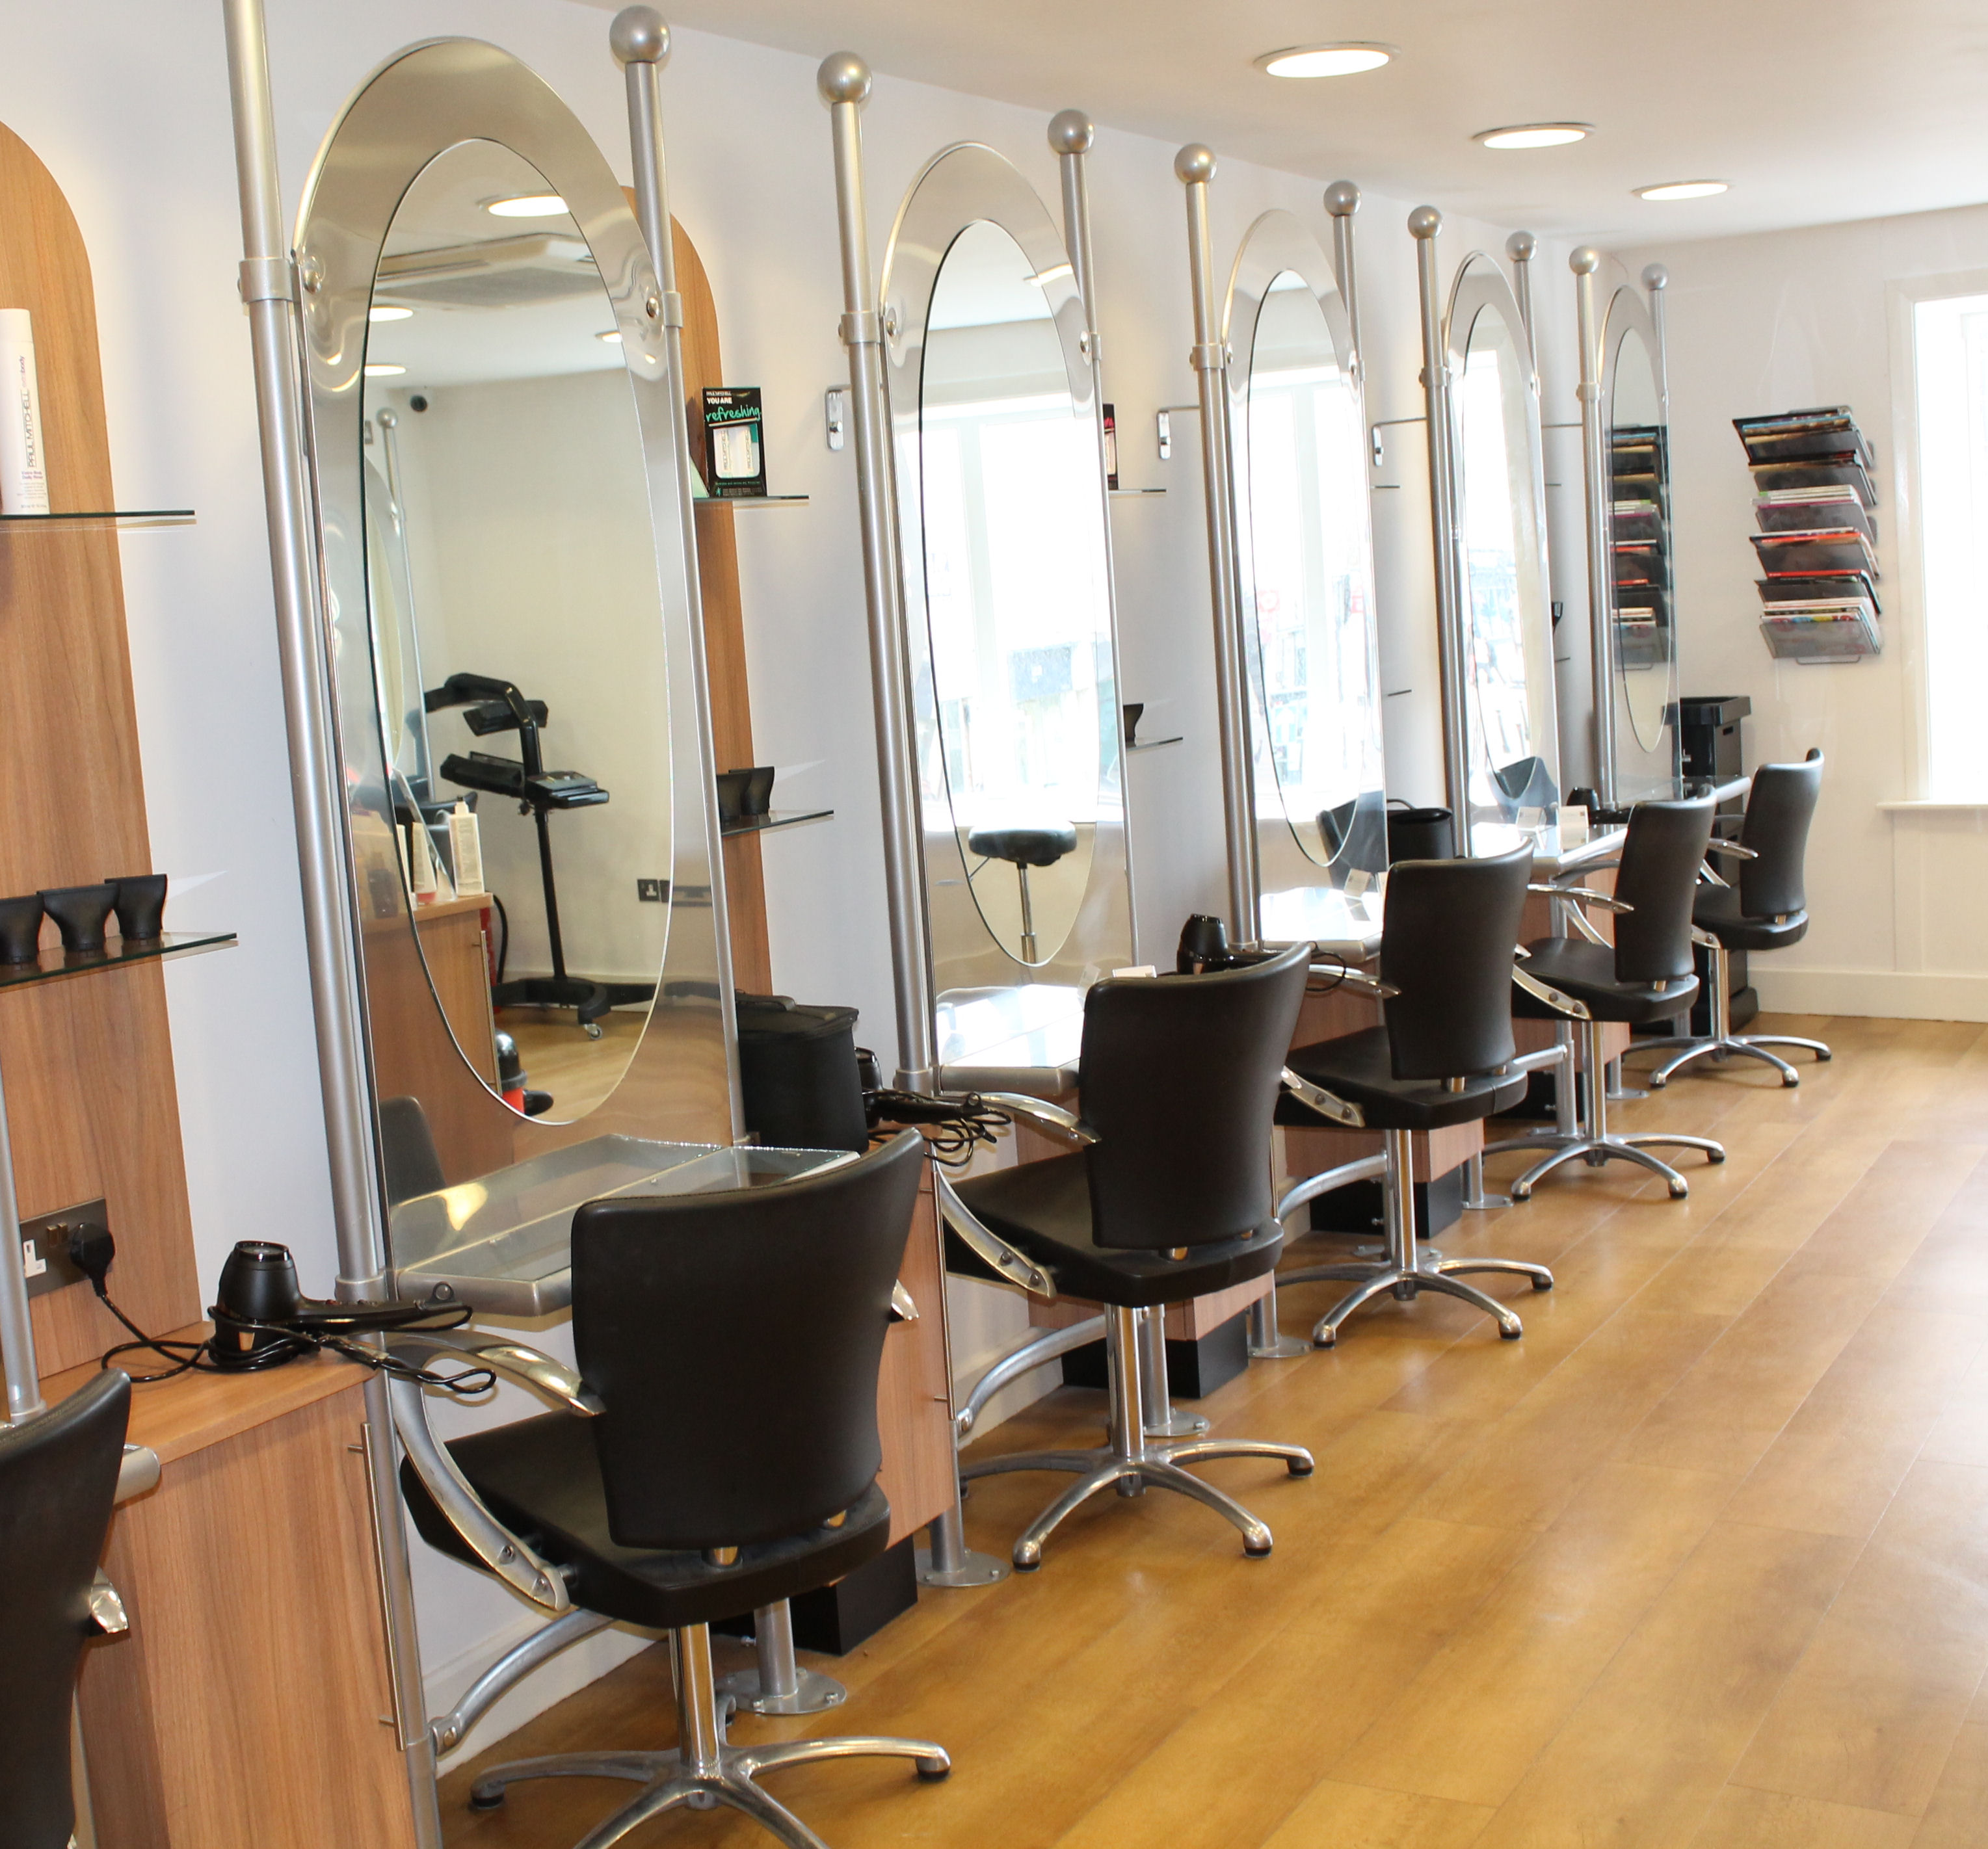 The Salon Professional Hairdressing Services Centrestage